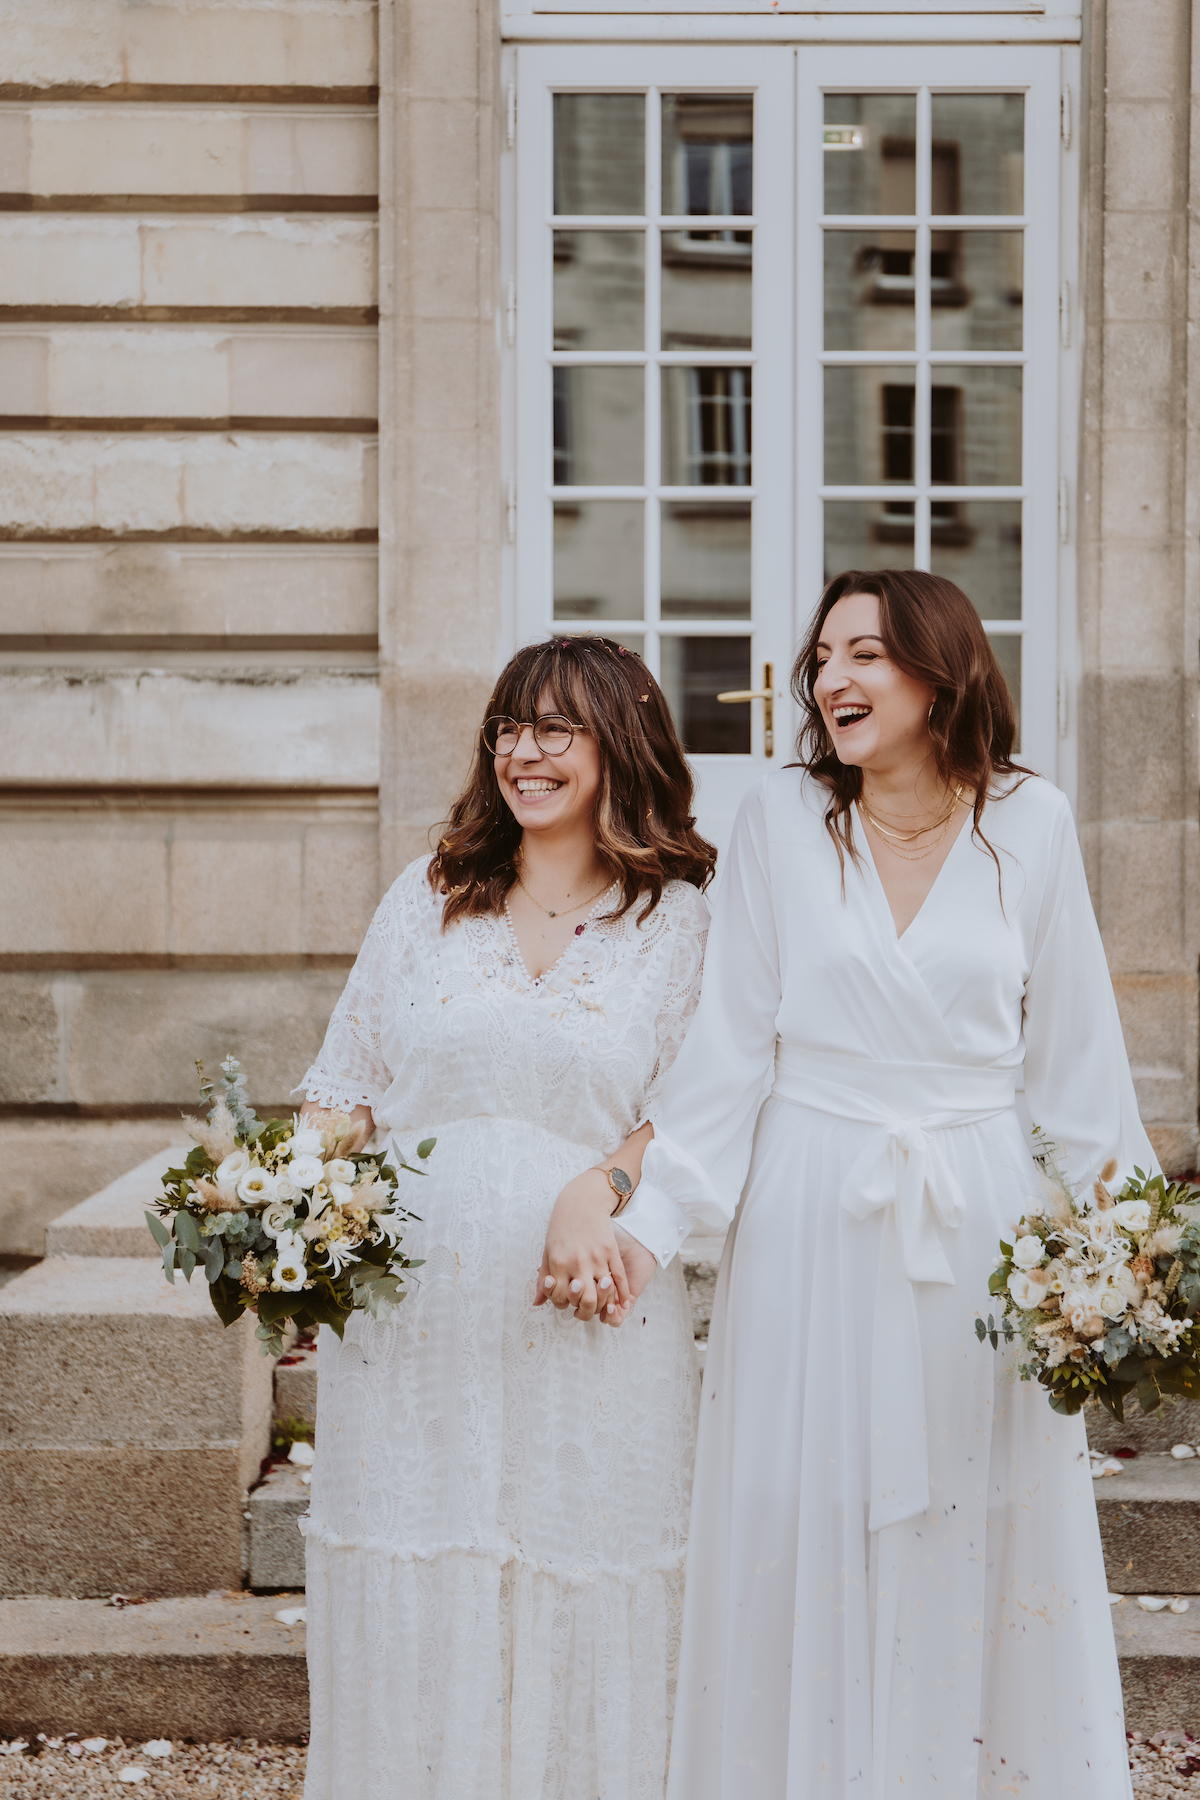 mariage gay mariees robes blanches bouquets